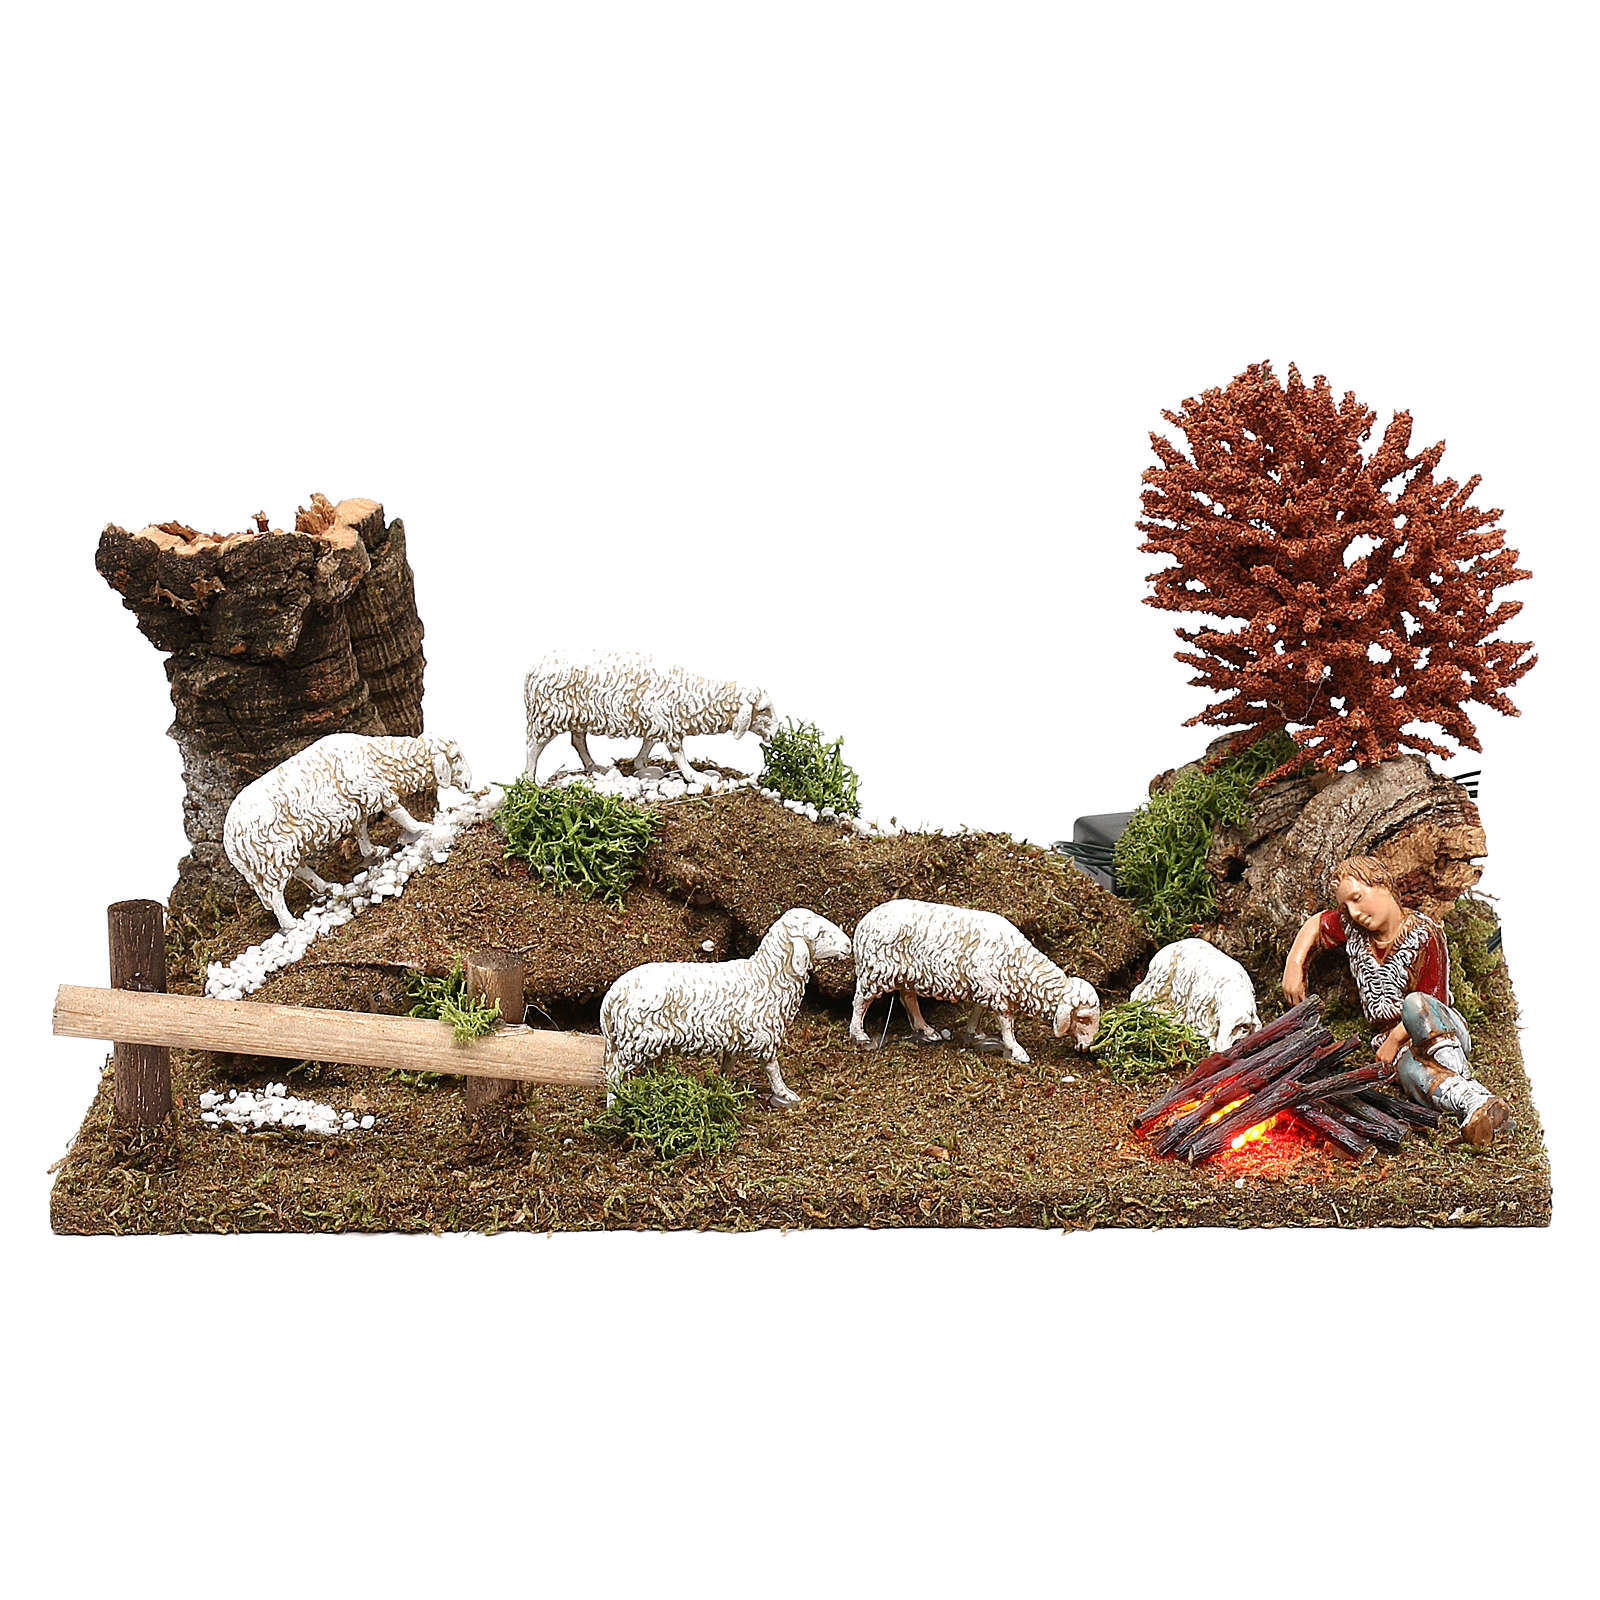 Scene with flock, shepherd and LED fire Nativity scene 10 cm 4